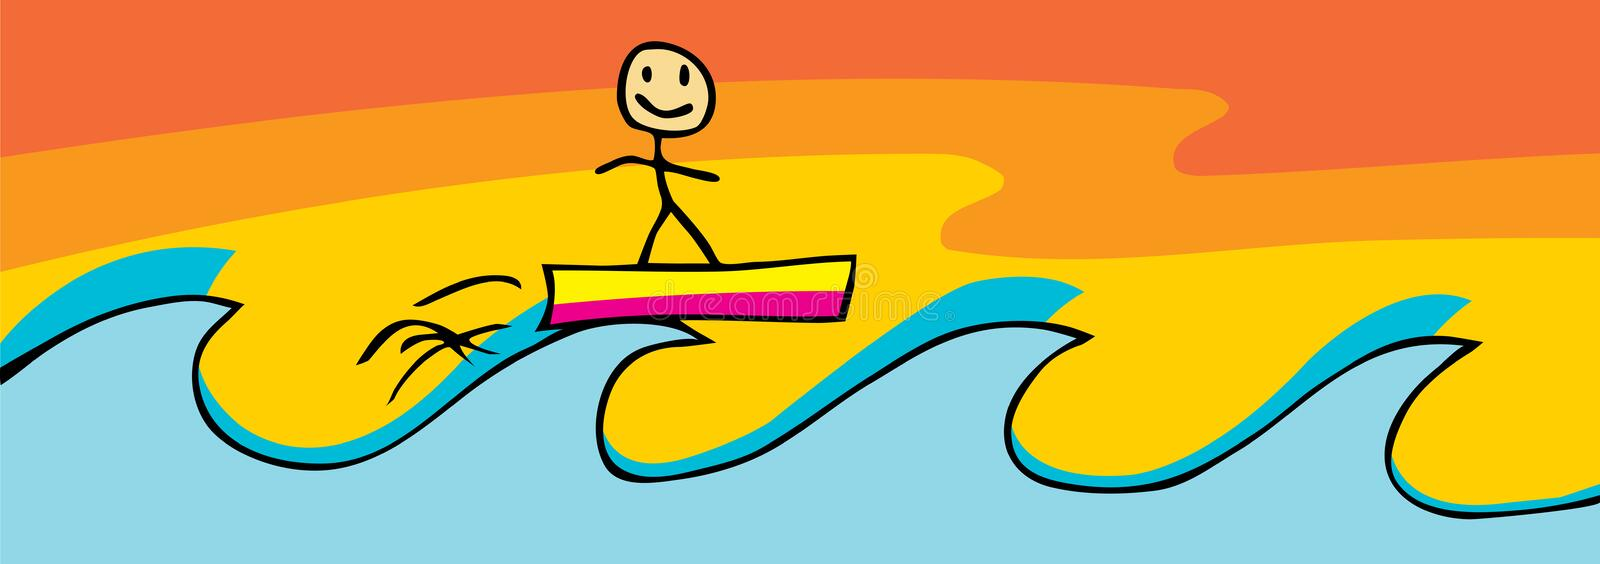 Download Surfing Stick Figure stock vector. Image of person, simple - 22220058